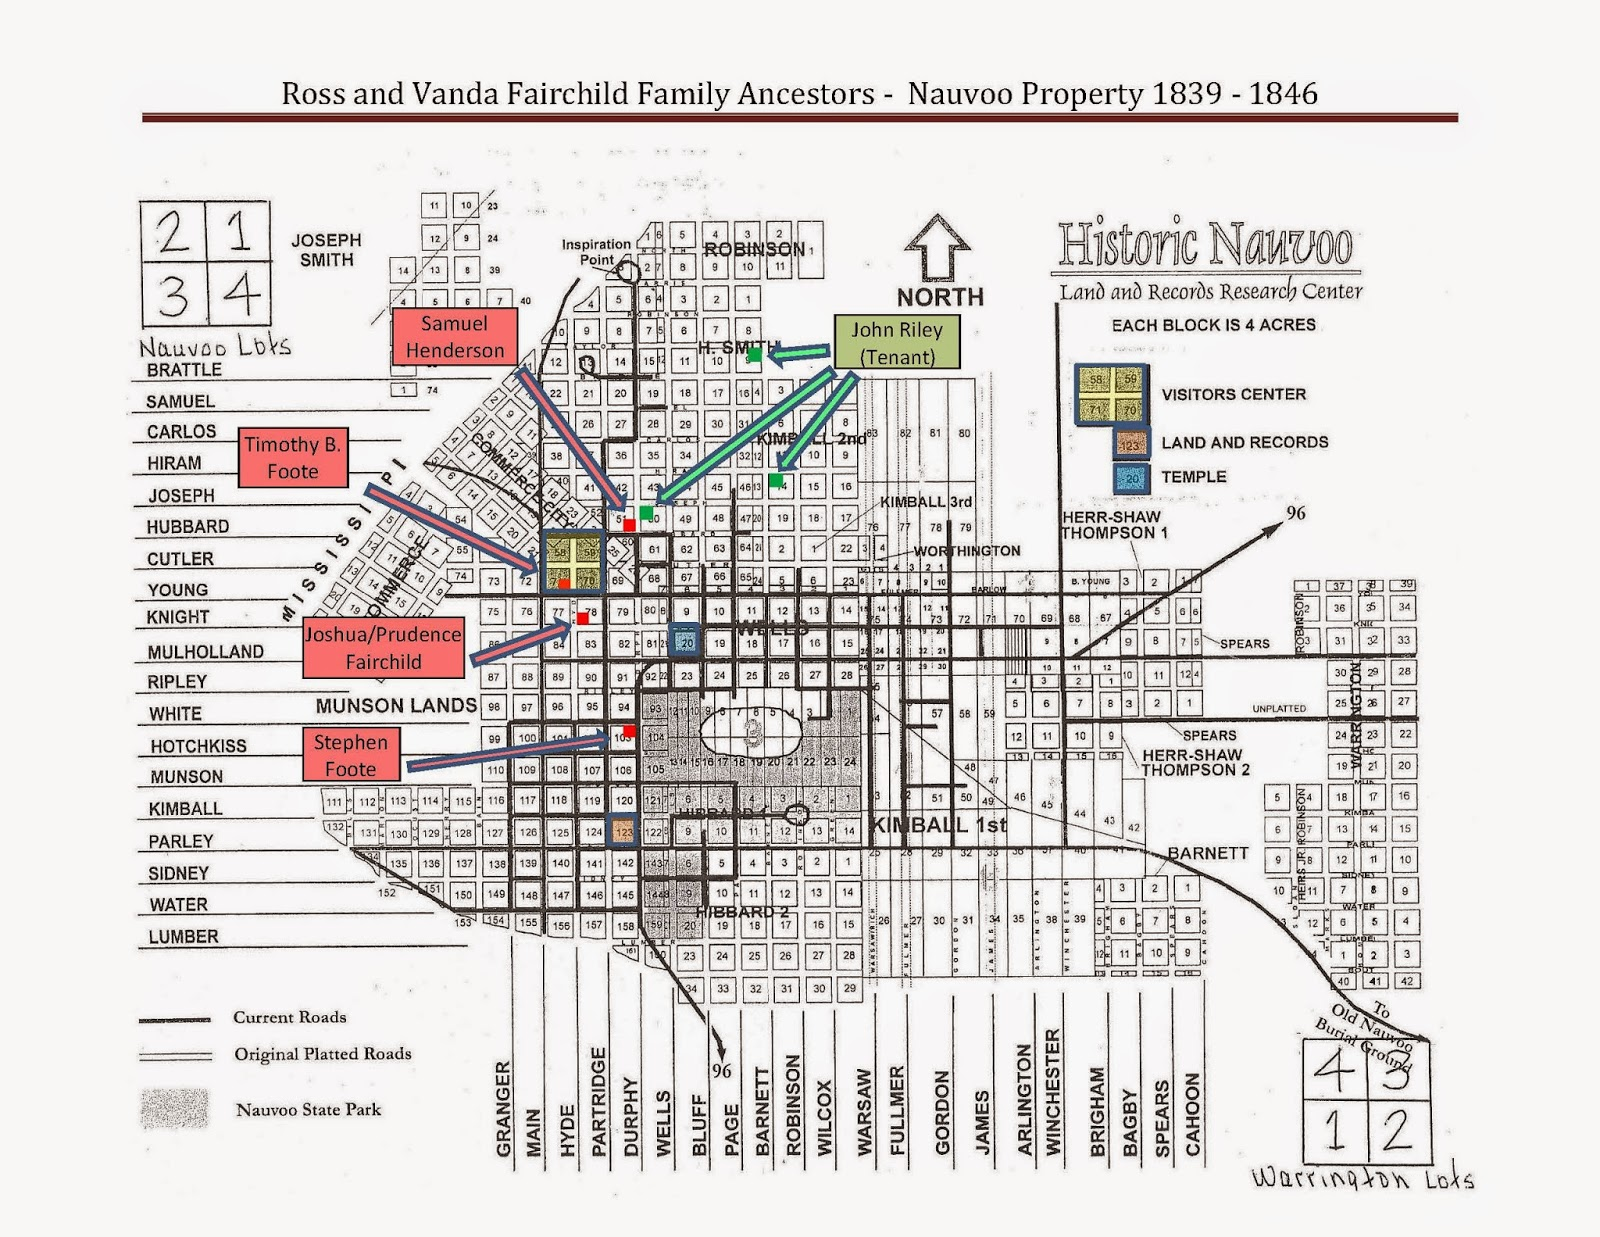 Reflections on Life in Nauvoo: Kent's Ancestors in Early Nauvoo